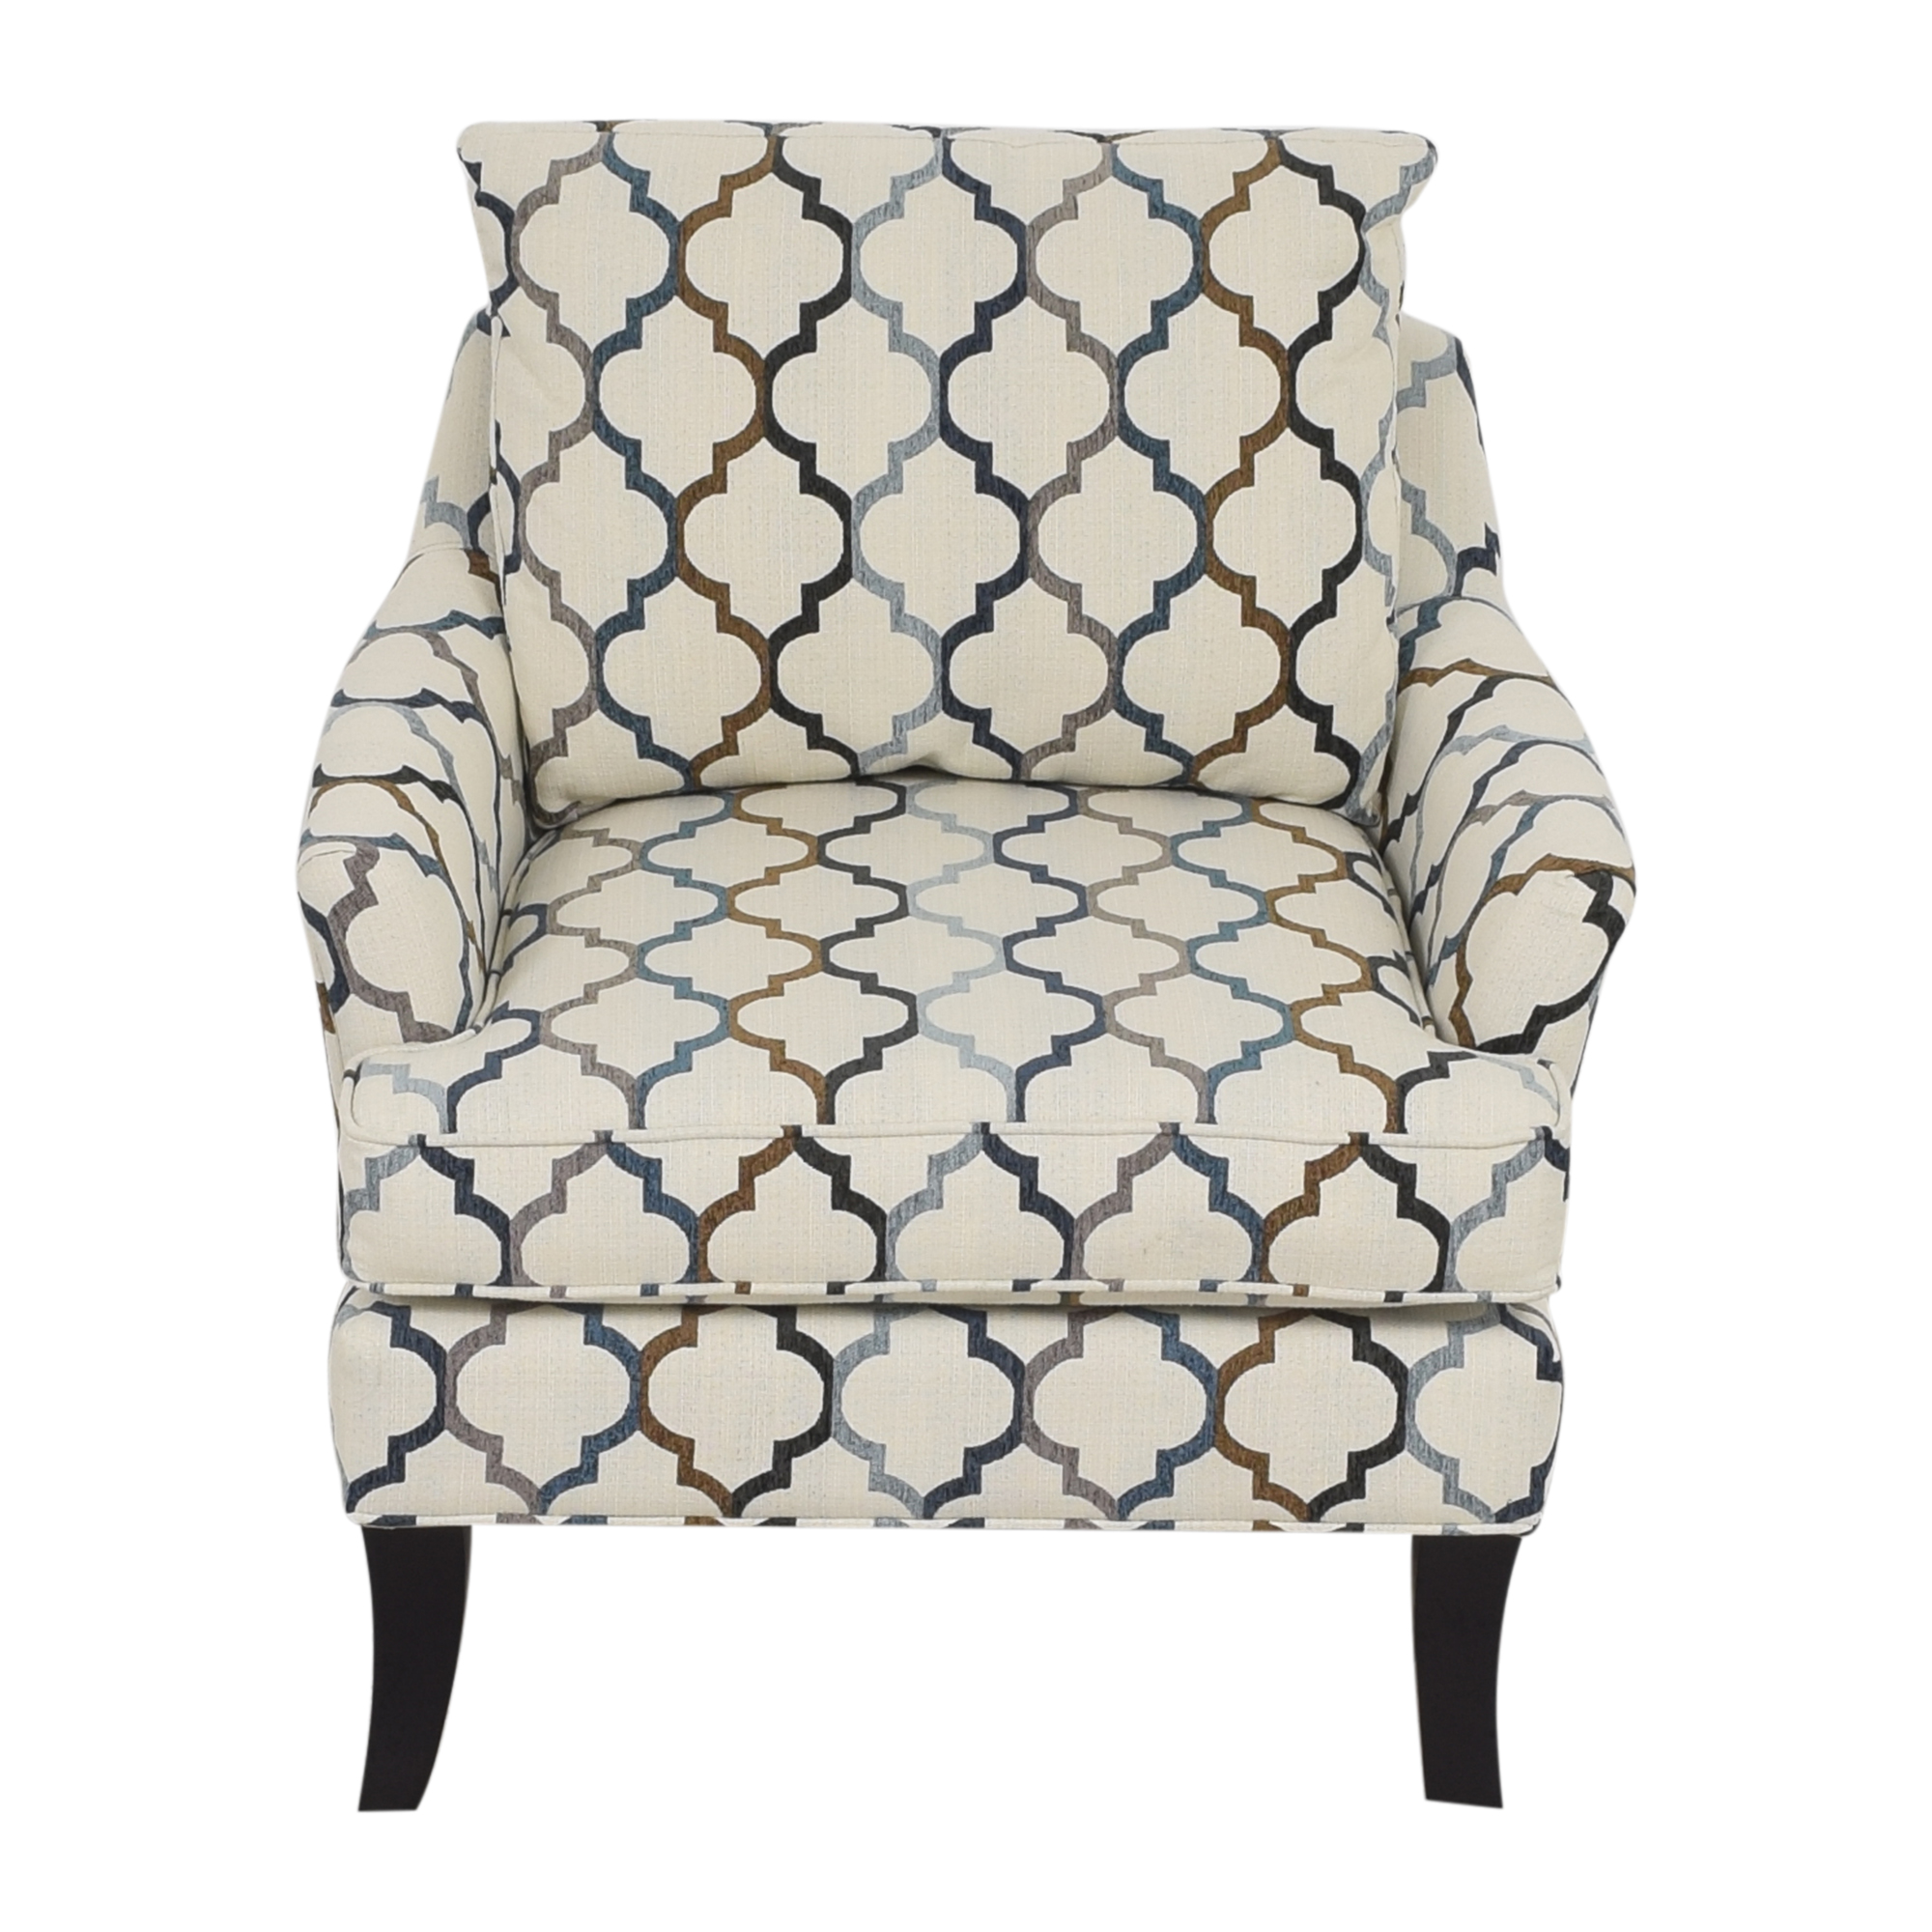 Raymour & Flanigan Raymour & Flanigan Quatrefoil Accent Chair ma